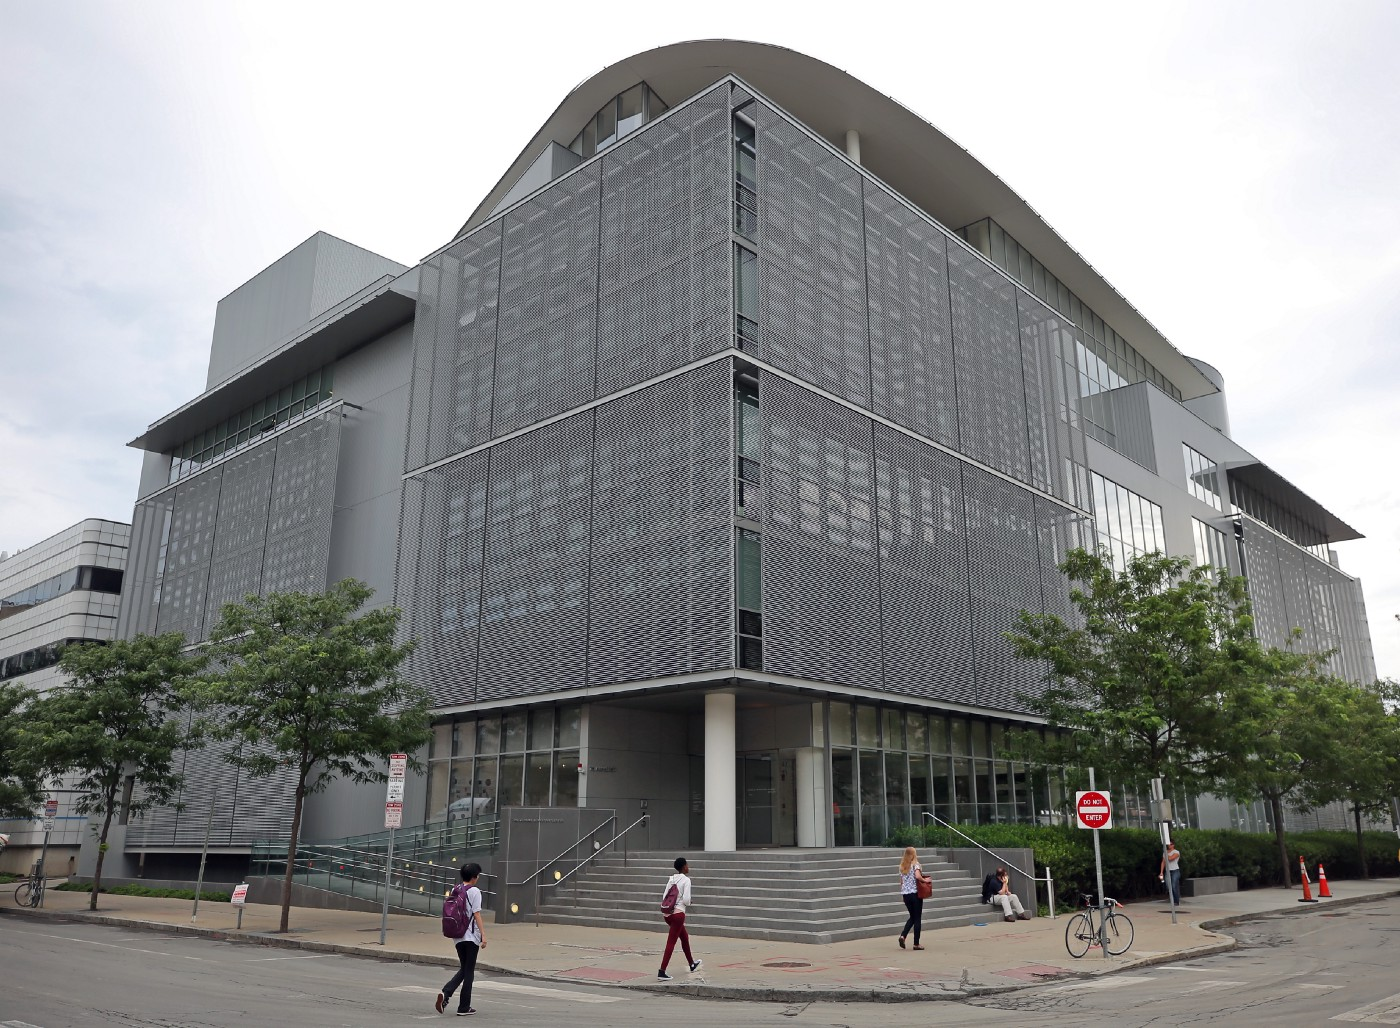 The exterior of the MIT media lab at 75 Amherst Street in Cambridge, MA is pictured on Aug. 23, 2019.